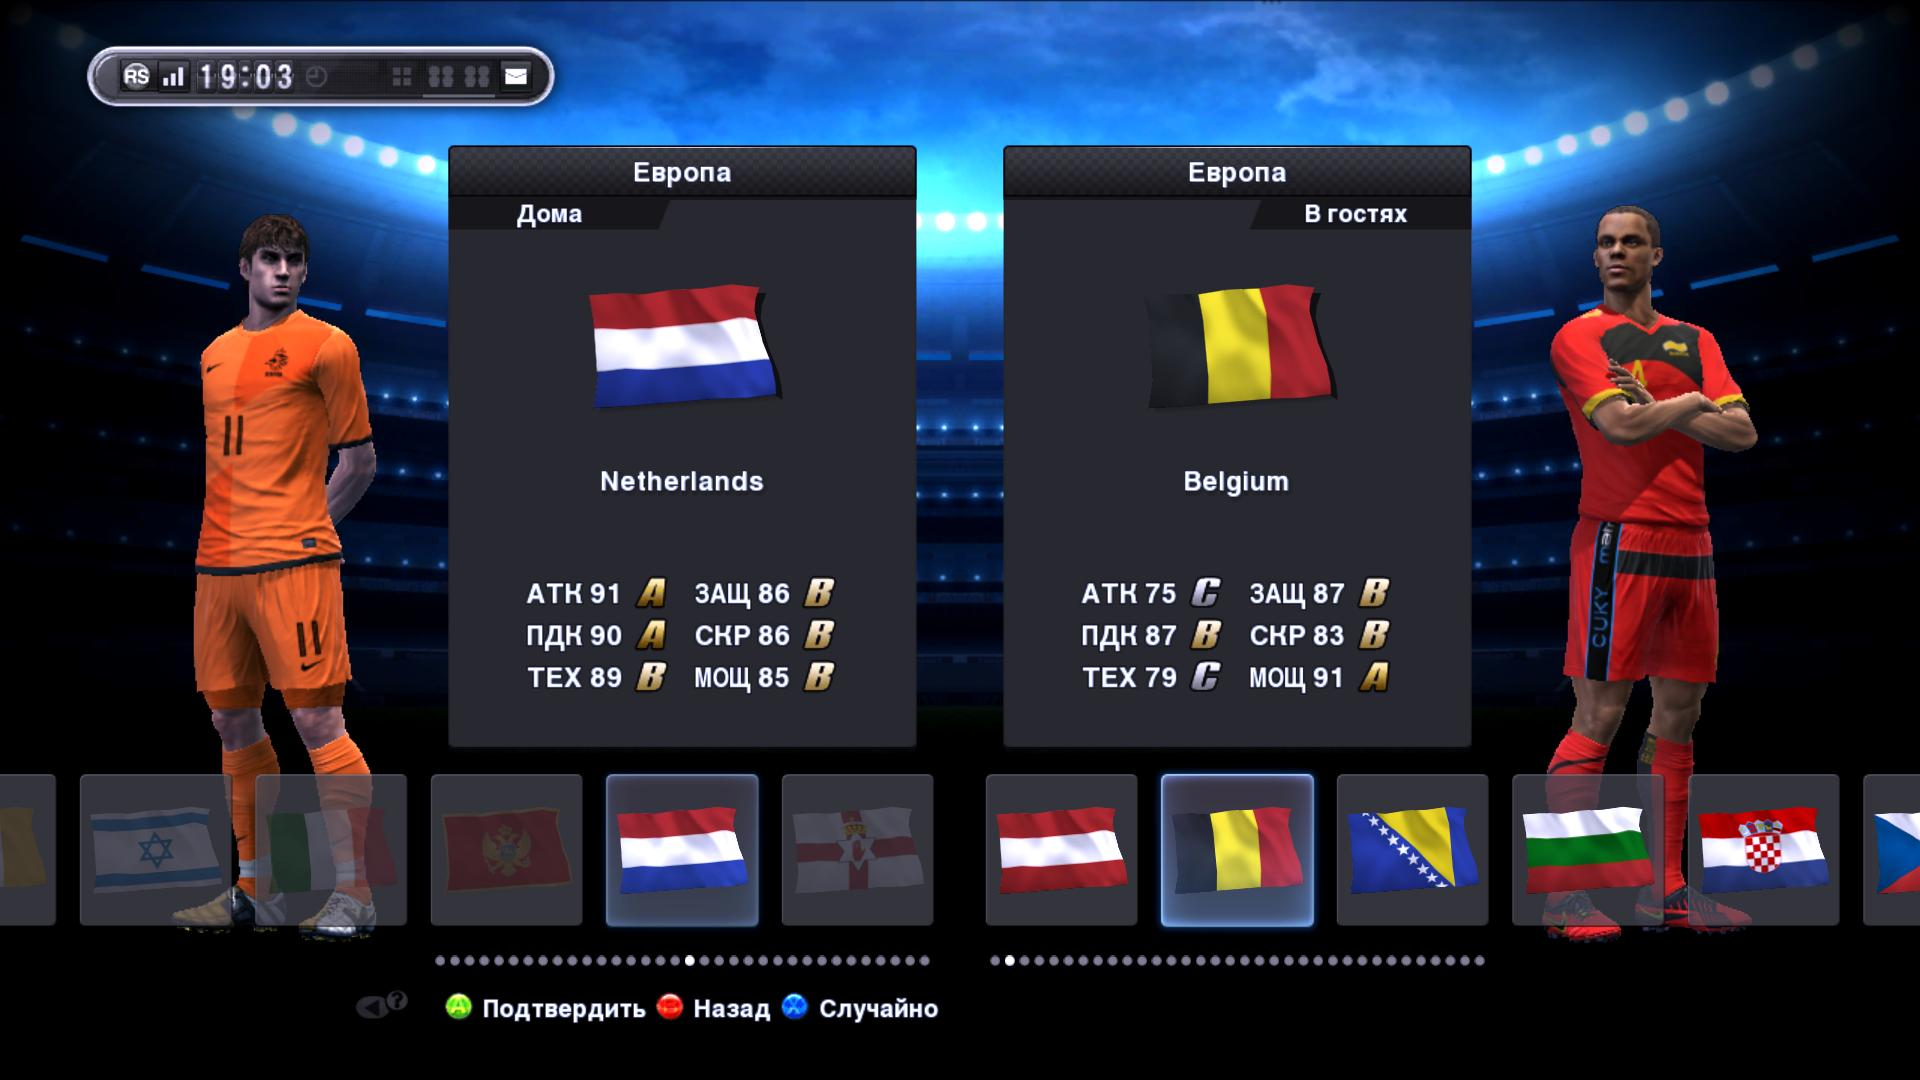 Download PES 2014 Patch PES 2014 Demo PES 2013 Patch PES 2012 Patchs